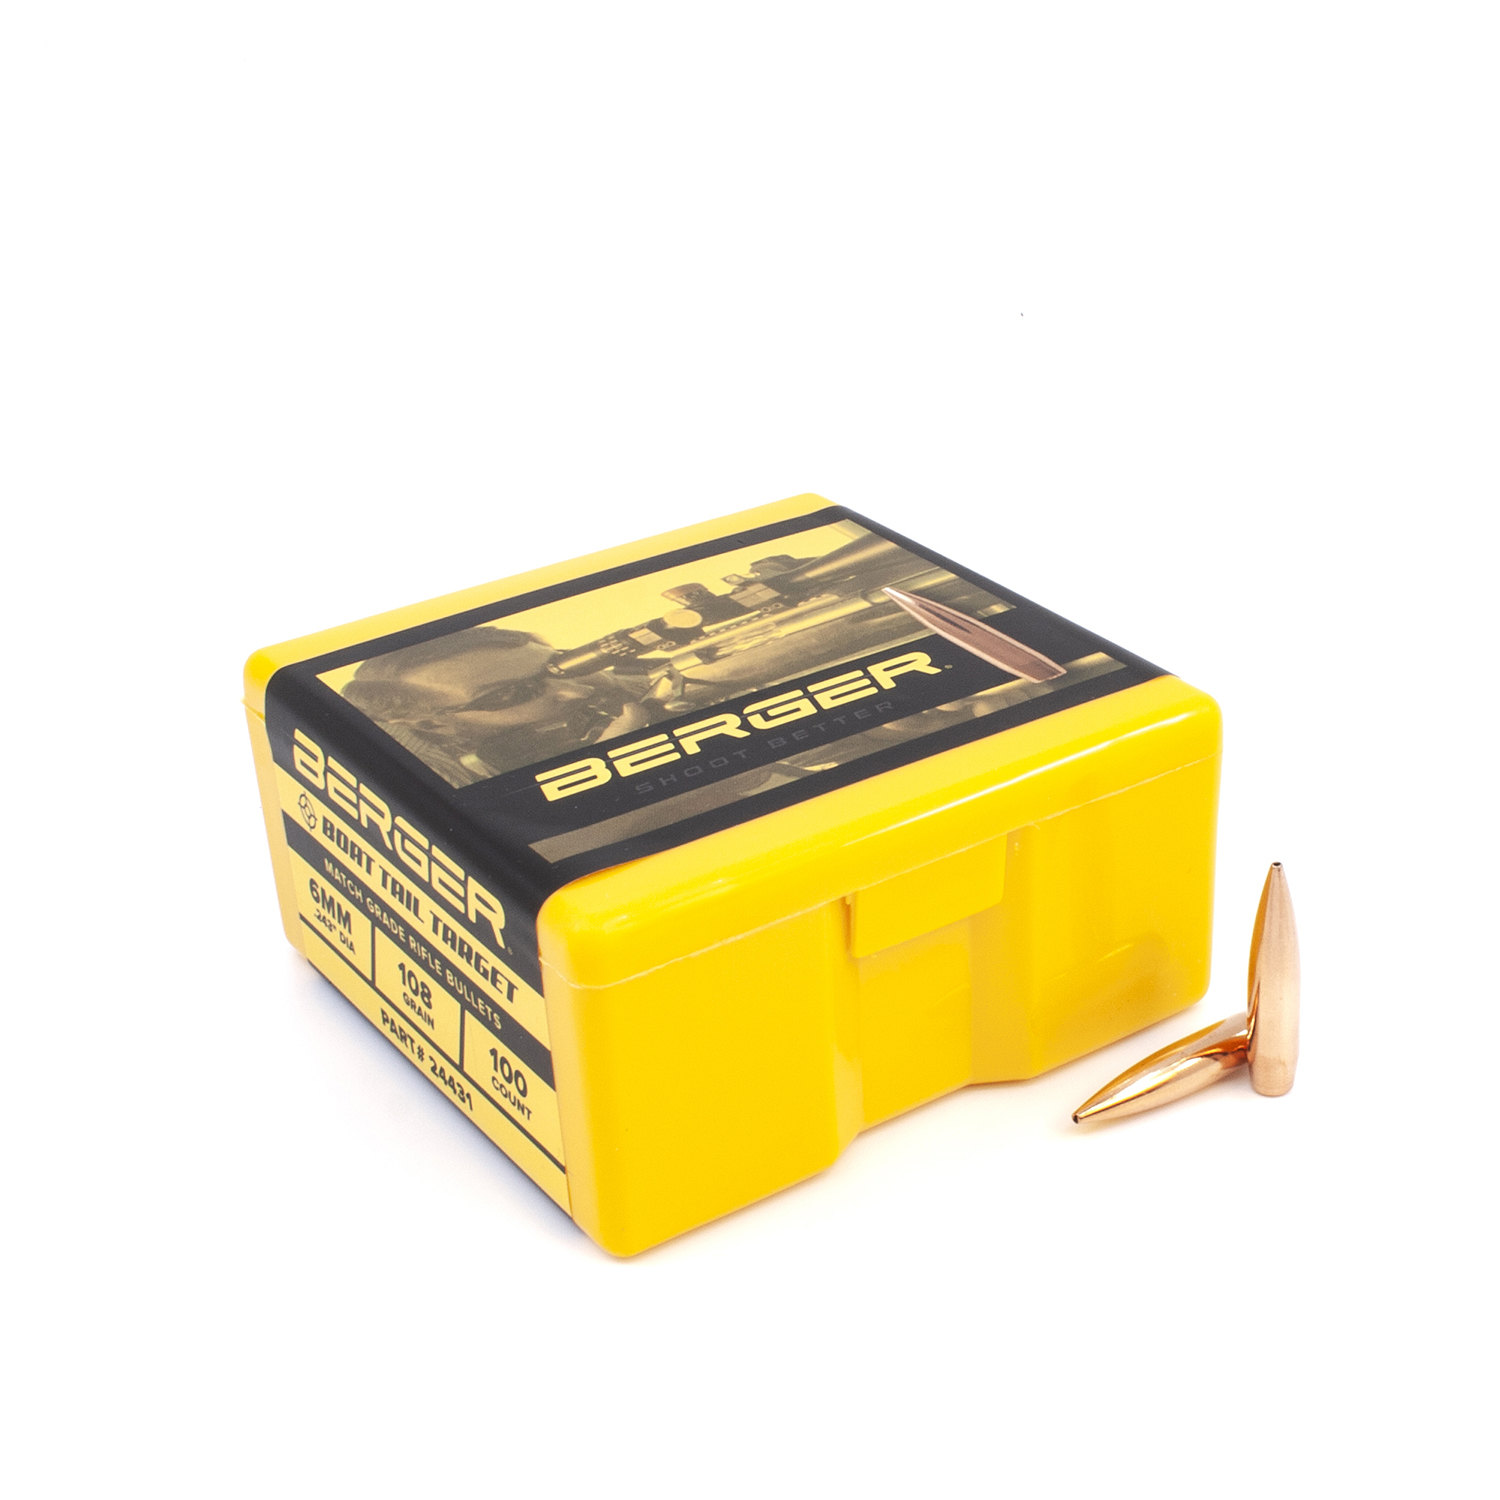 Berger Bullets - 6mm, 108 gr. Target Bot Tail - Box of 100